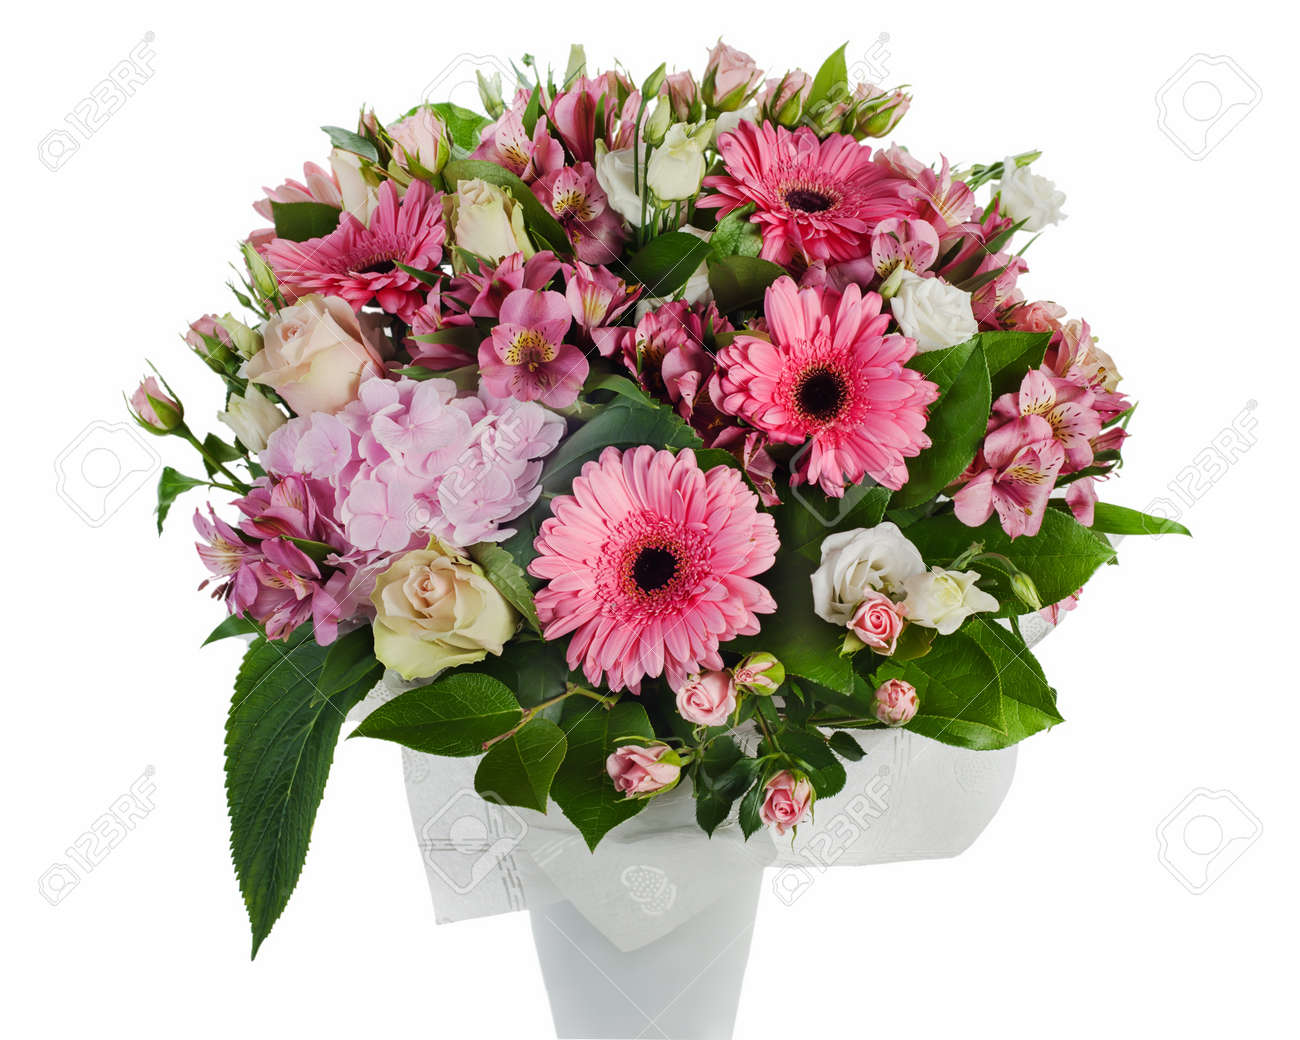 colorful floral bouquet of roses, lilies and orchids arrangement centerpiece in vase isolated on white background Stock Photo - 16242122